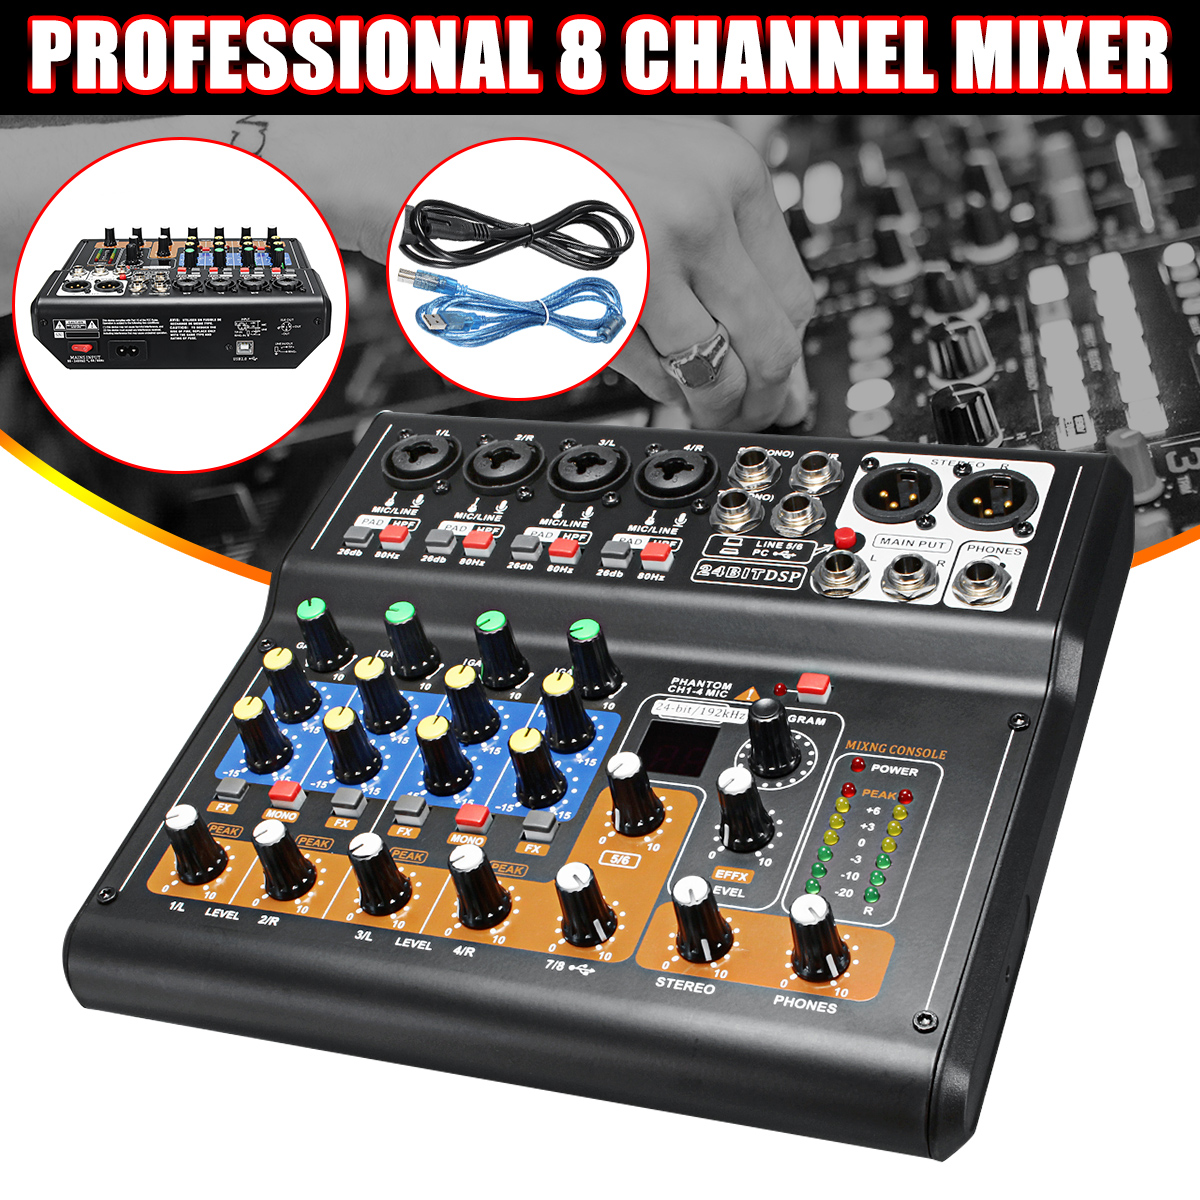 Kinco Mini Portable Mixer 8 Channel Professional Live Studio Audio KTV Karaoke Mixer USB Mixing Console 48V for Family KTV